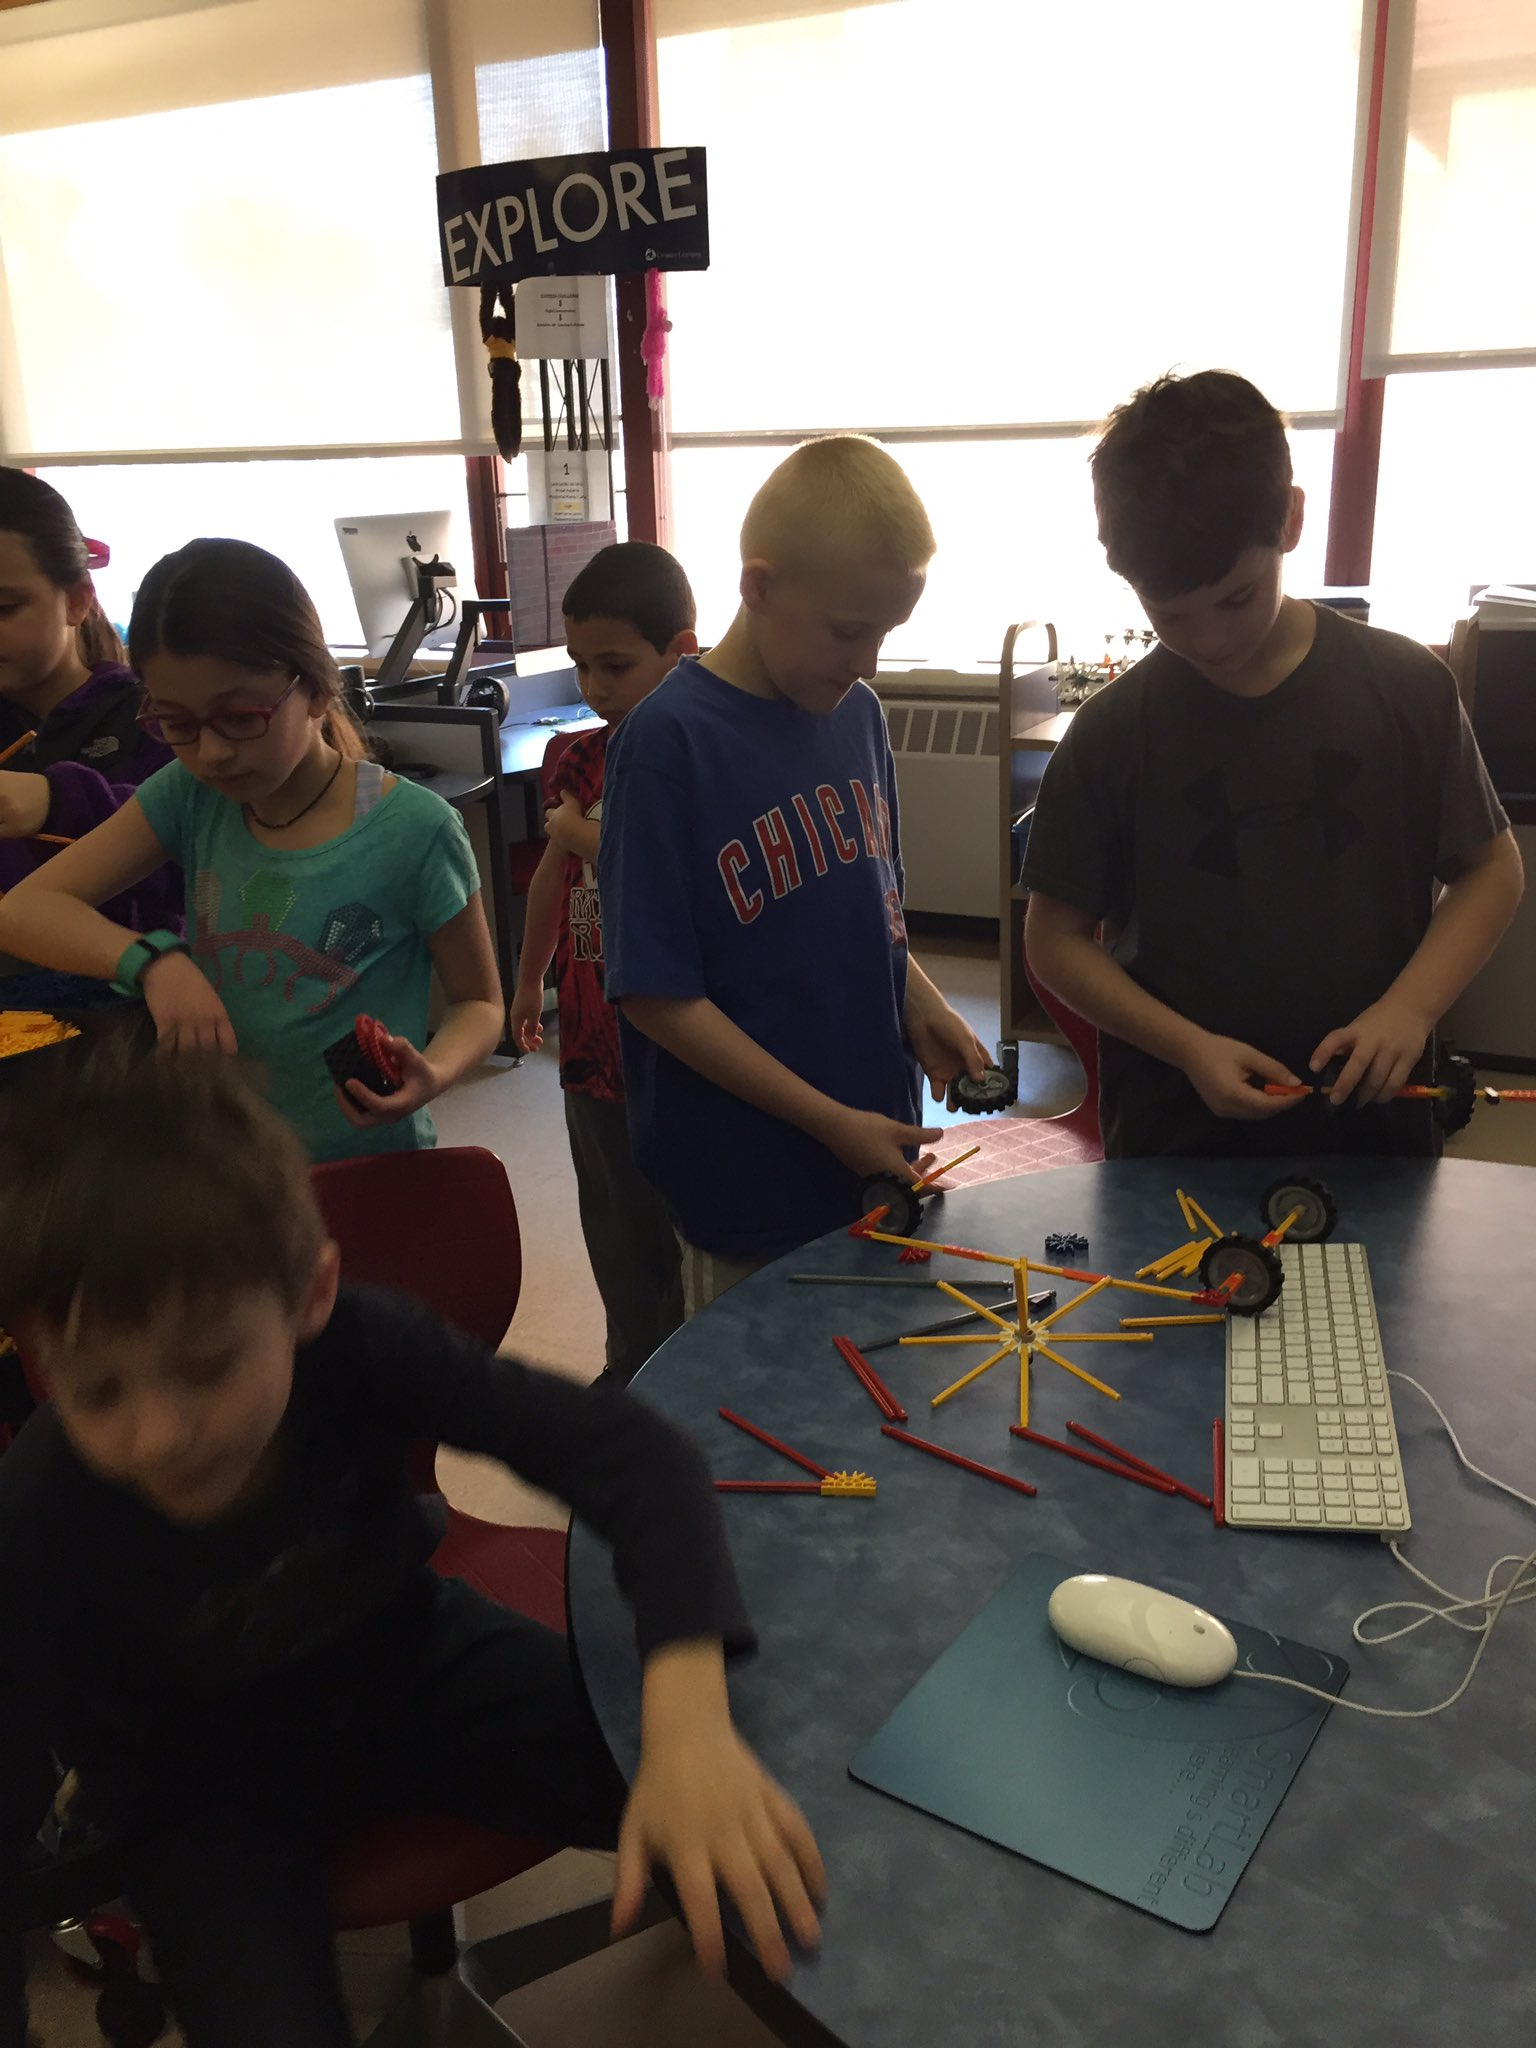 Buddies making levers #engage109 #sp109 https://t.co/psjgSFh7N5